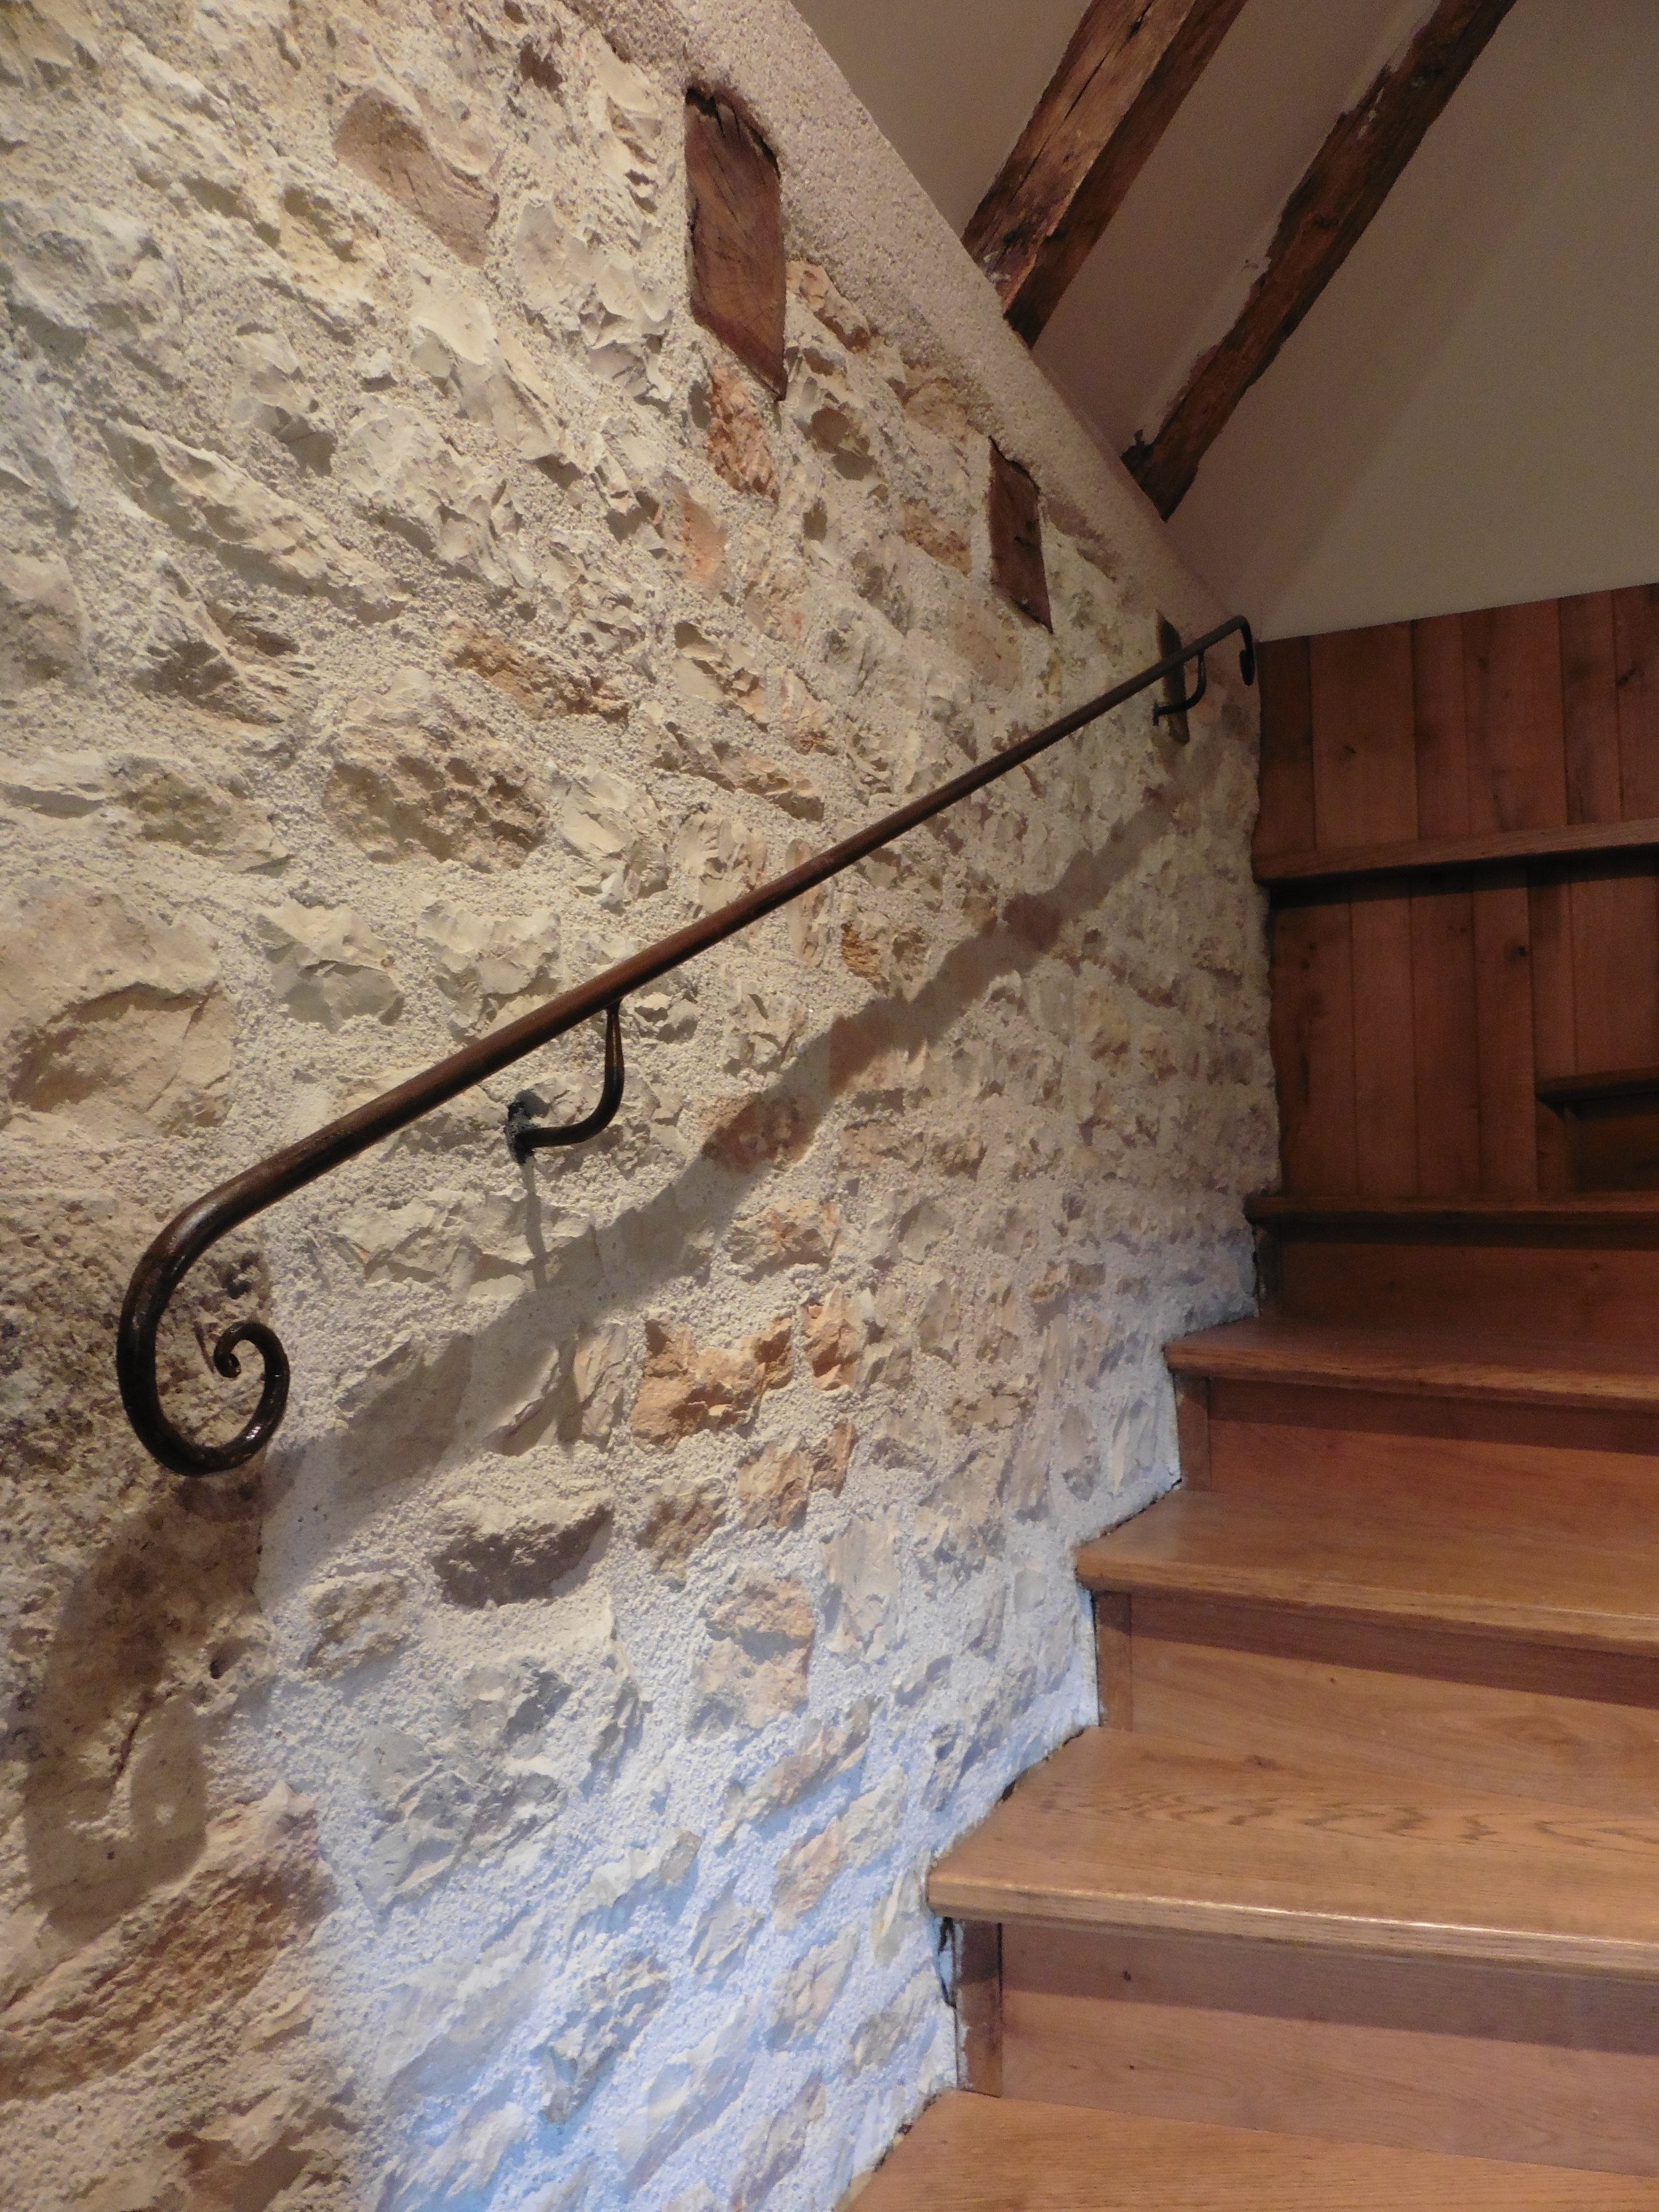 Handrail with a gentle curl at each end. Finished in a linseed oil-based product.